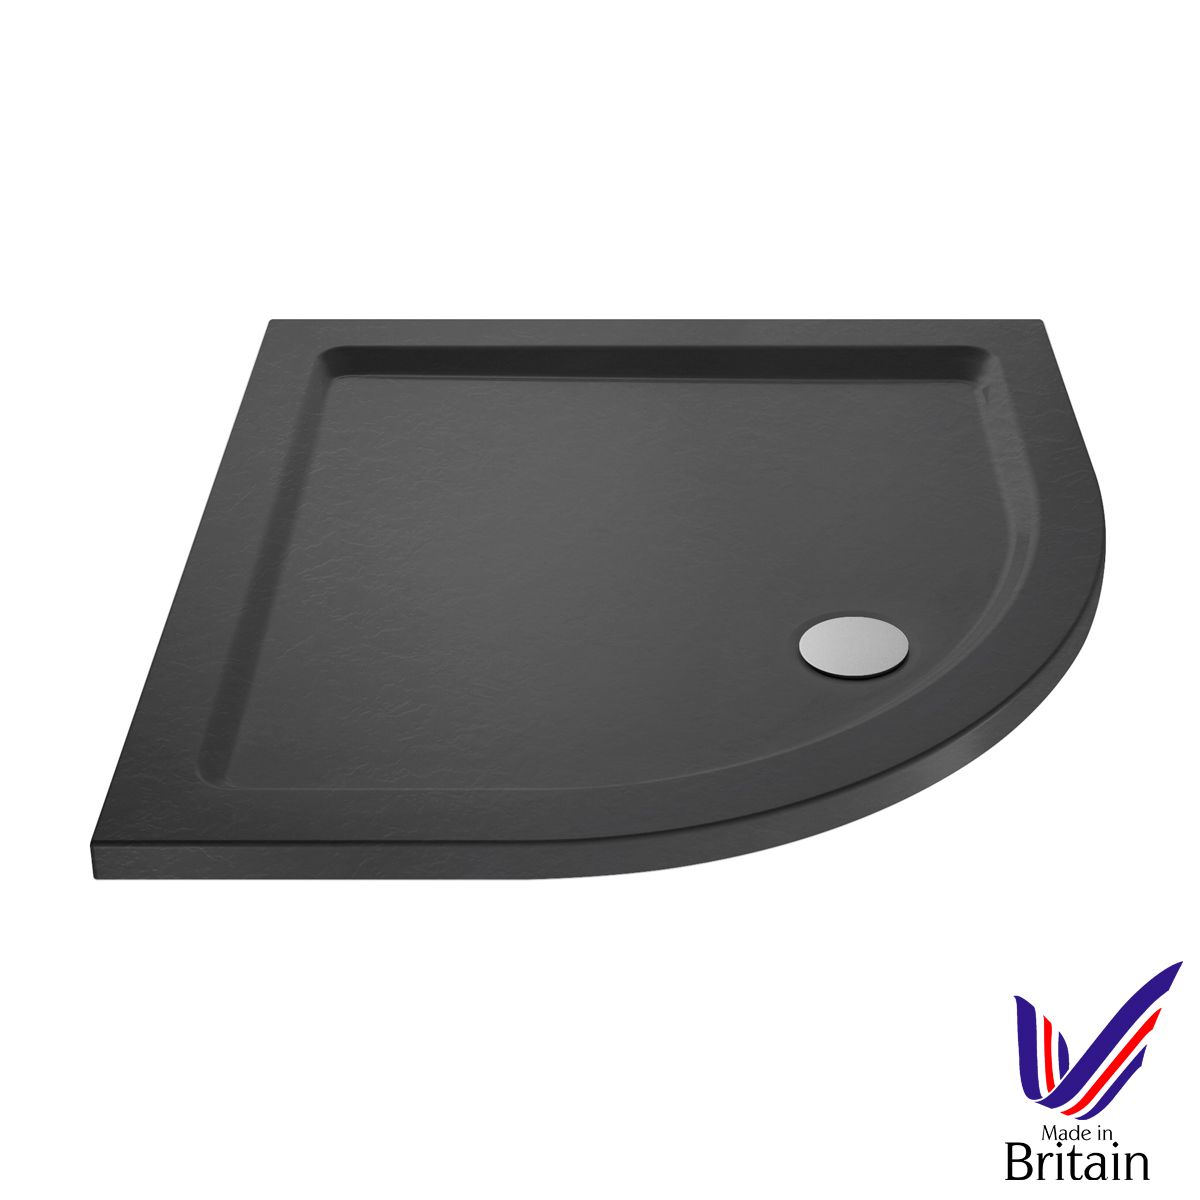 700 x 700 Shower Tray Slate Grey Quadrant Low Profile by Pearlstone